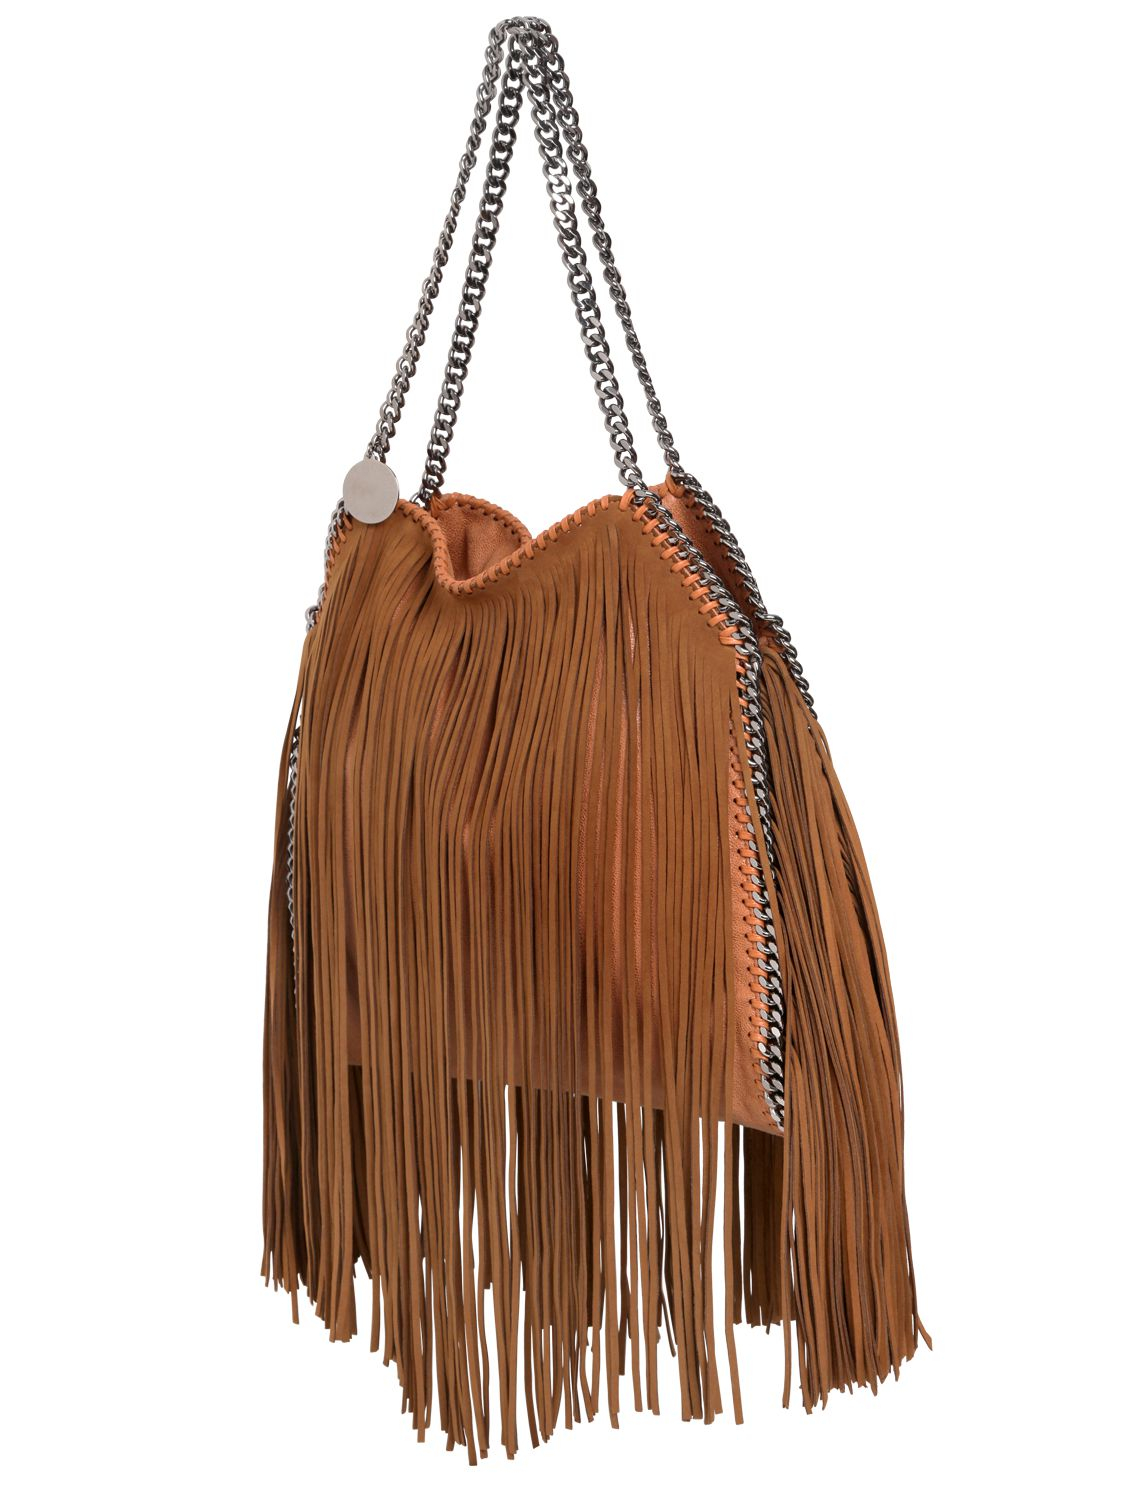 Gallery Previously Sold At Luisa Via Roma Women S Fringed Bags Stella Mccartney Falabella